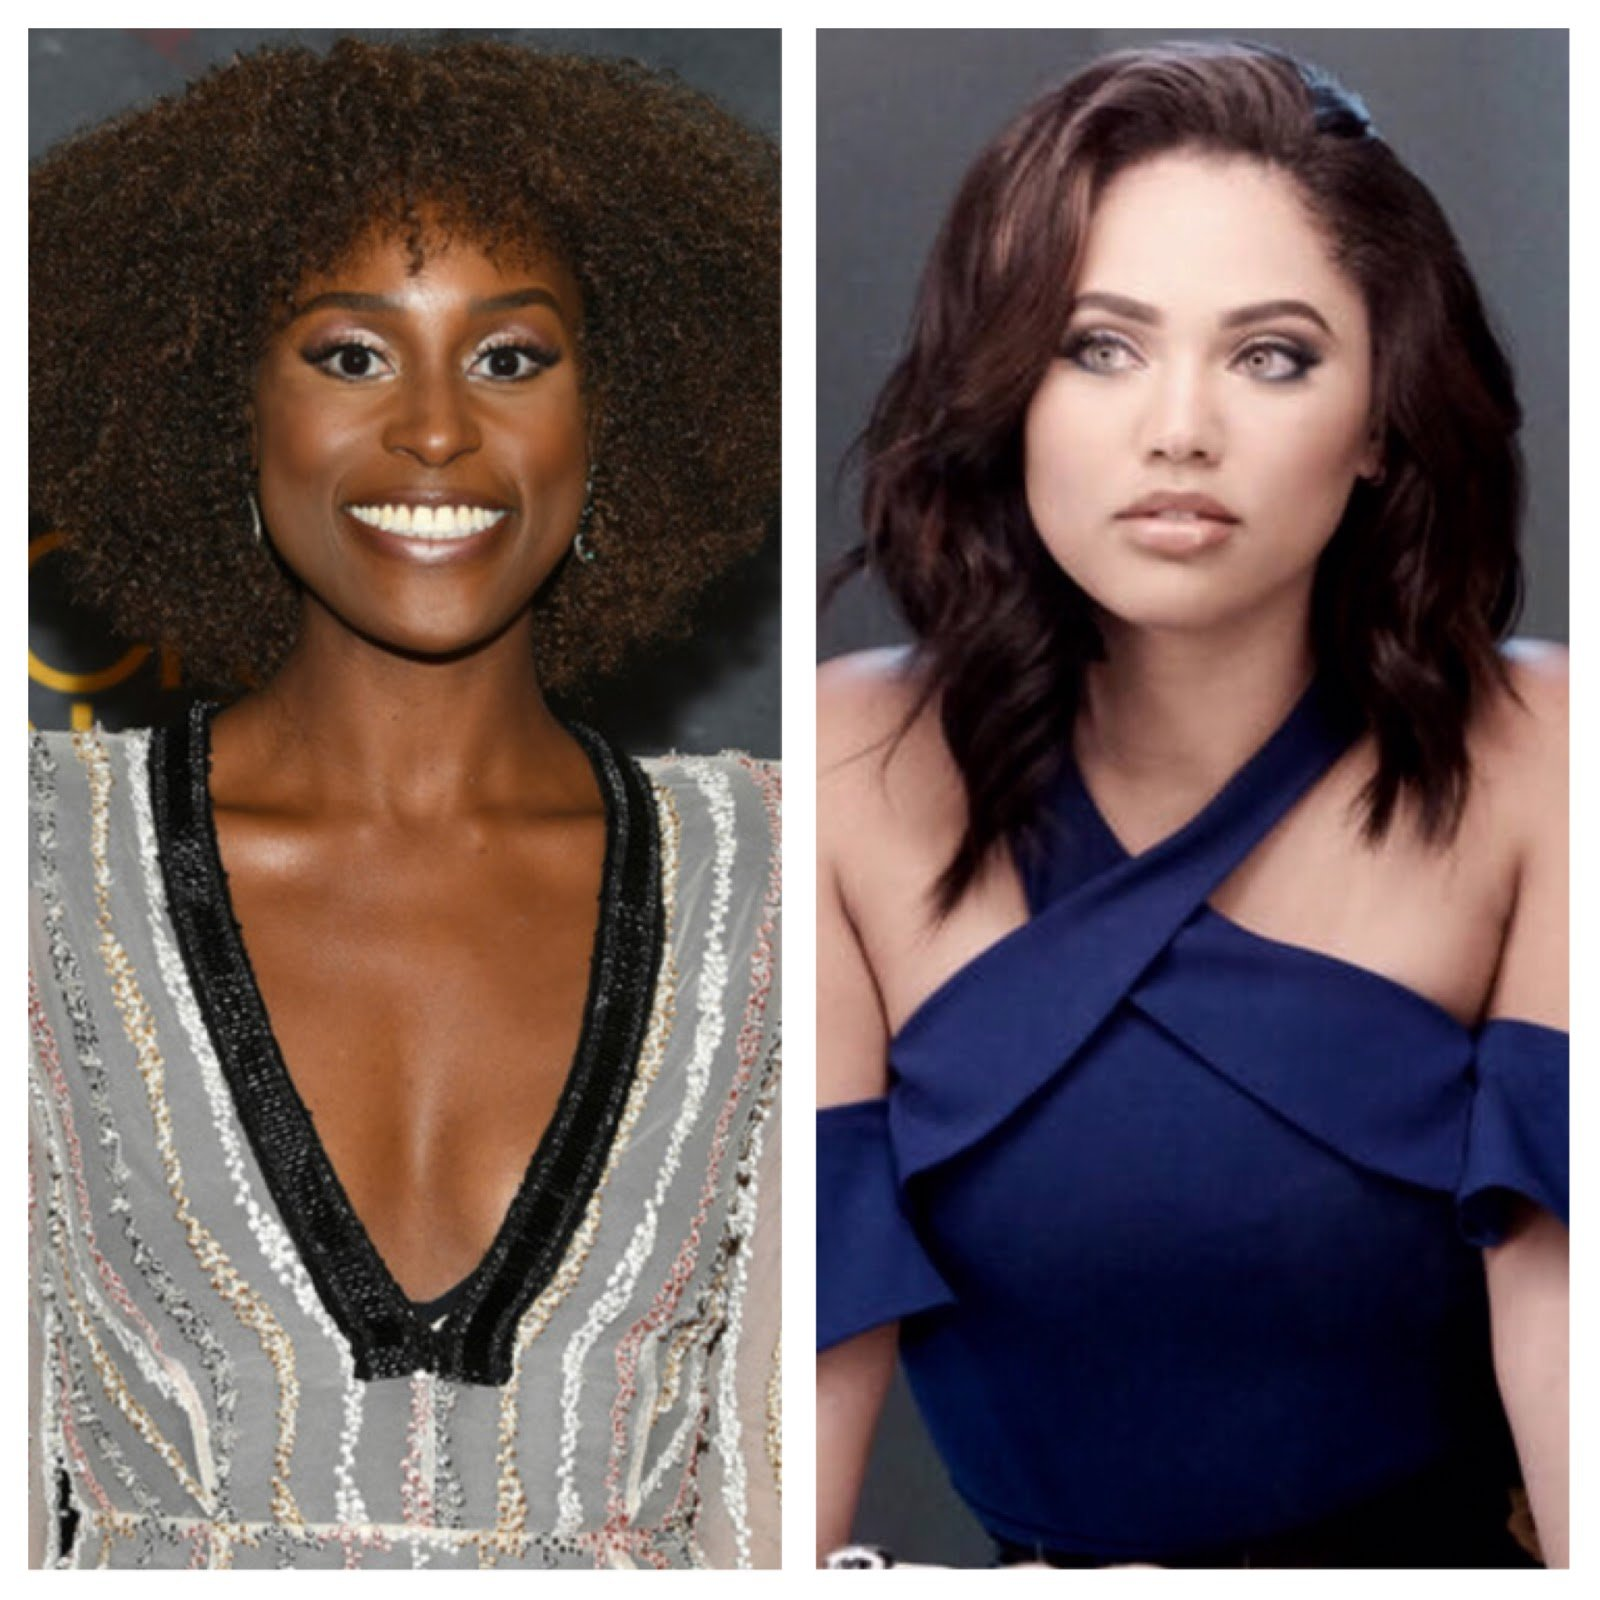 Newest CoverGirls Issa Rae, Ayesha Curry & 9 Other Times CG Got It Right!